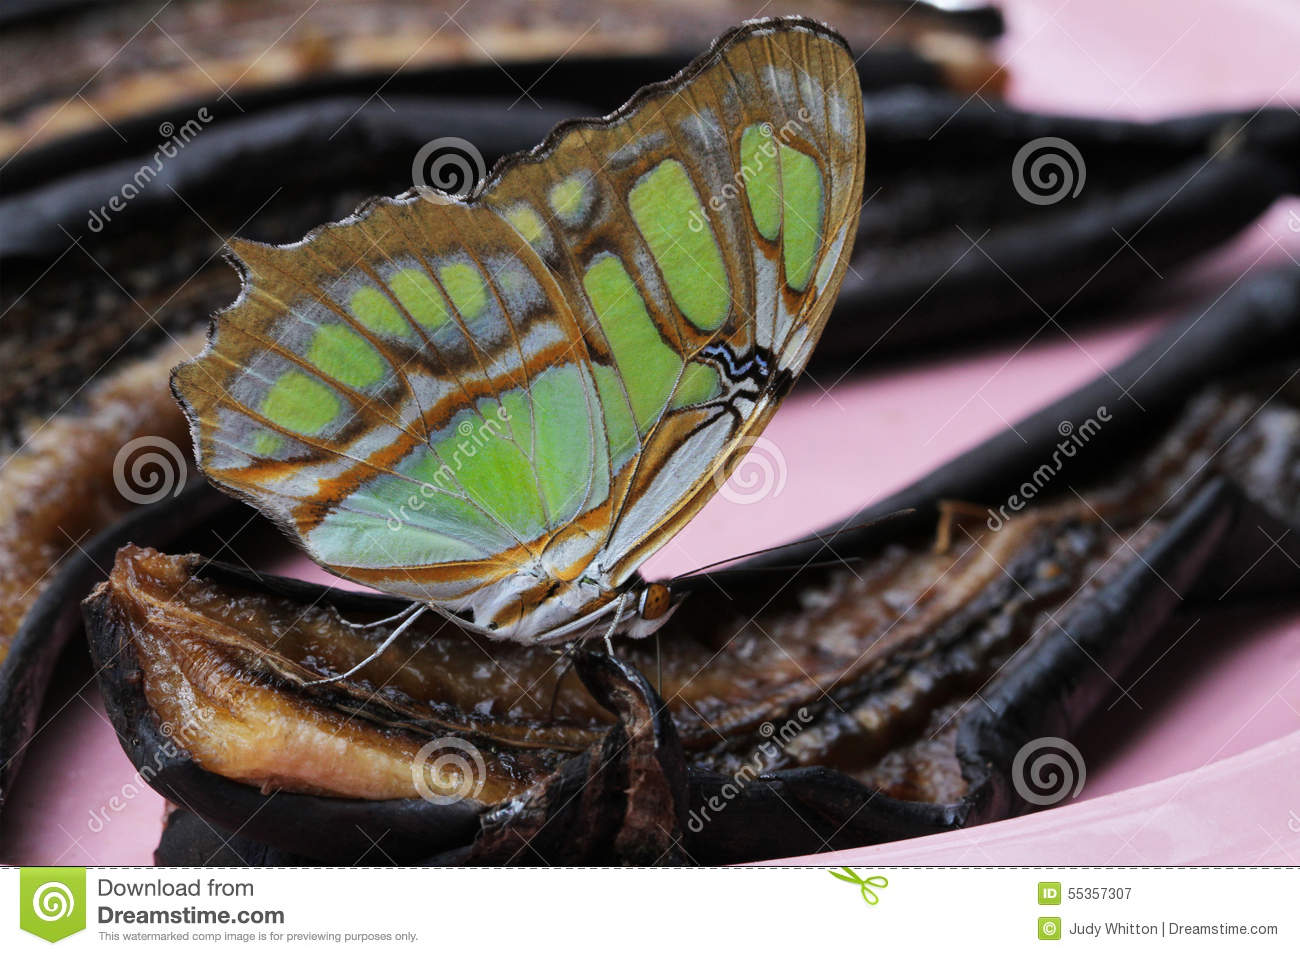 Papillon de malachite